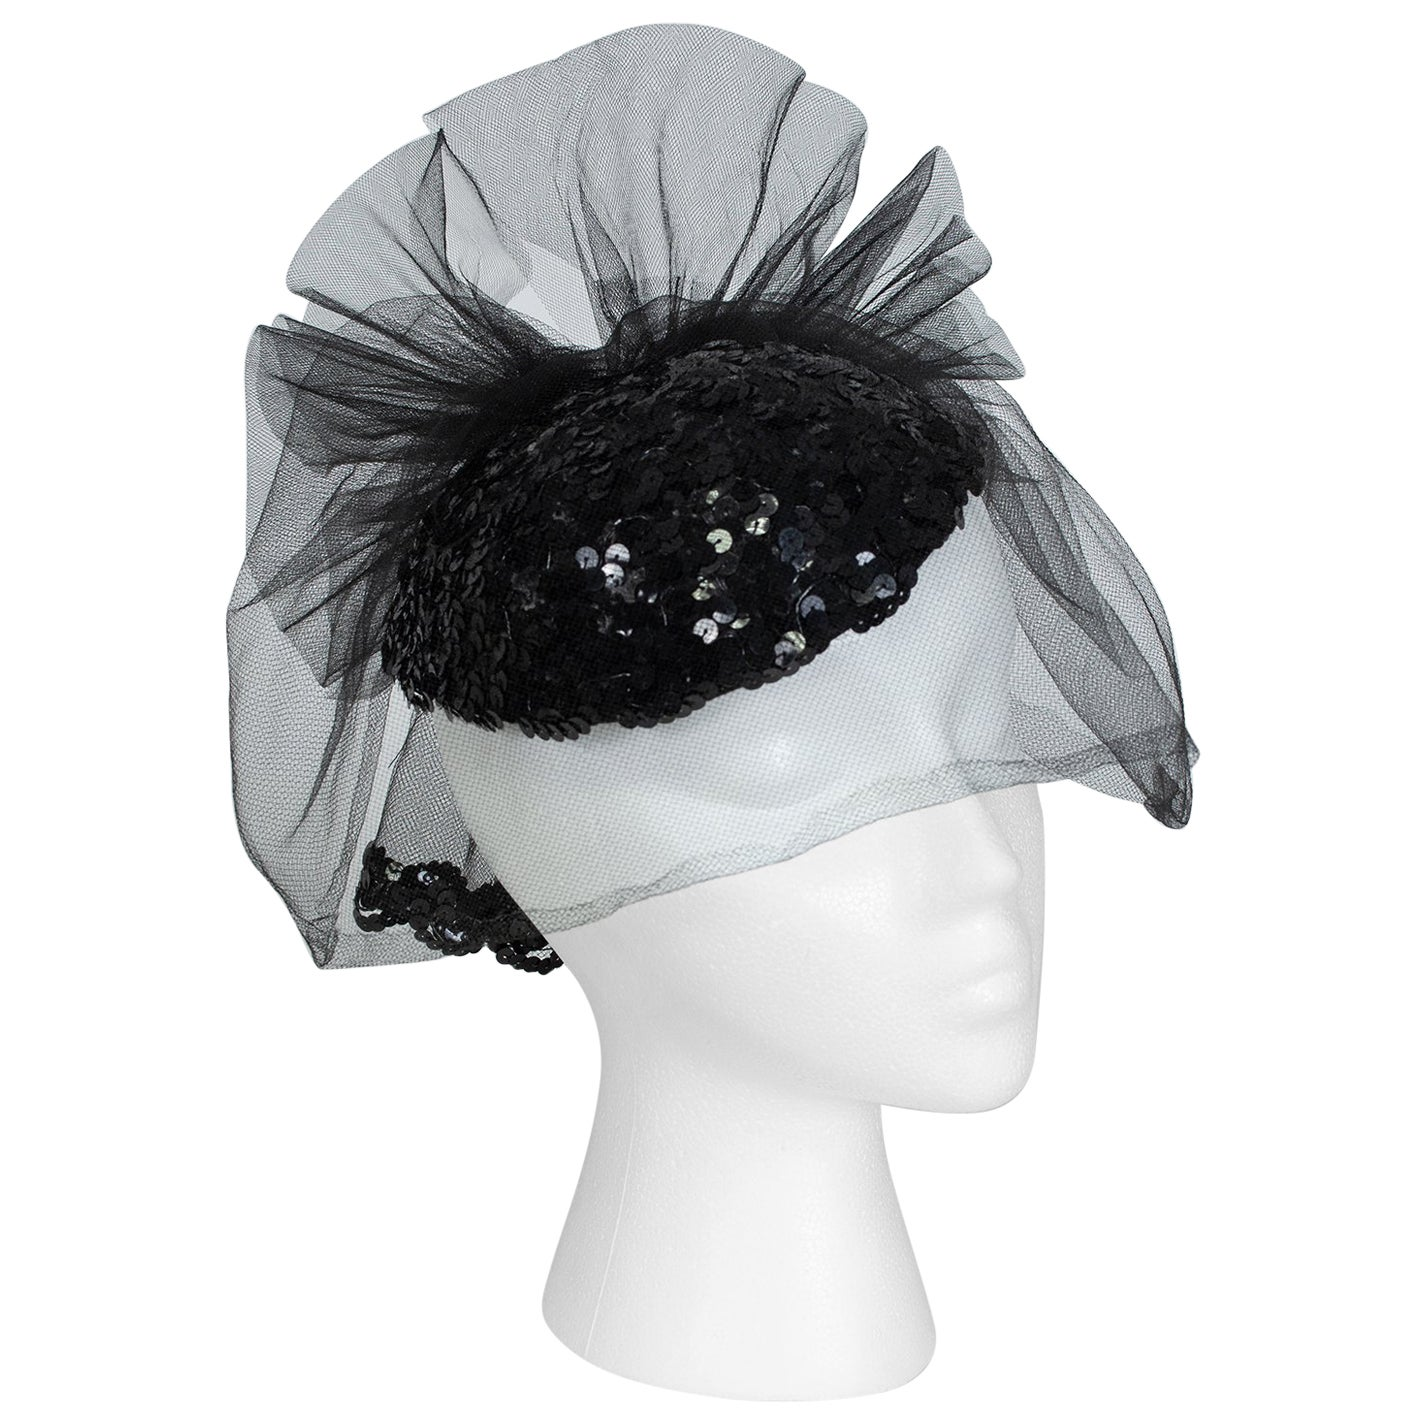 Black Sequin Cocktail Hat with Cage Veil, 1950s